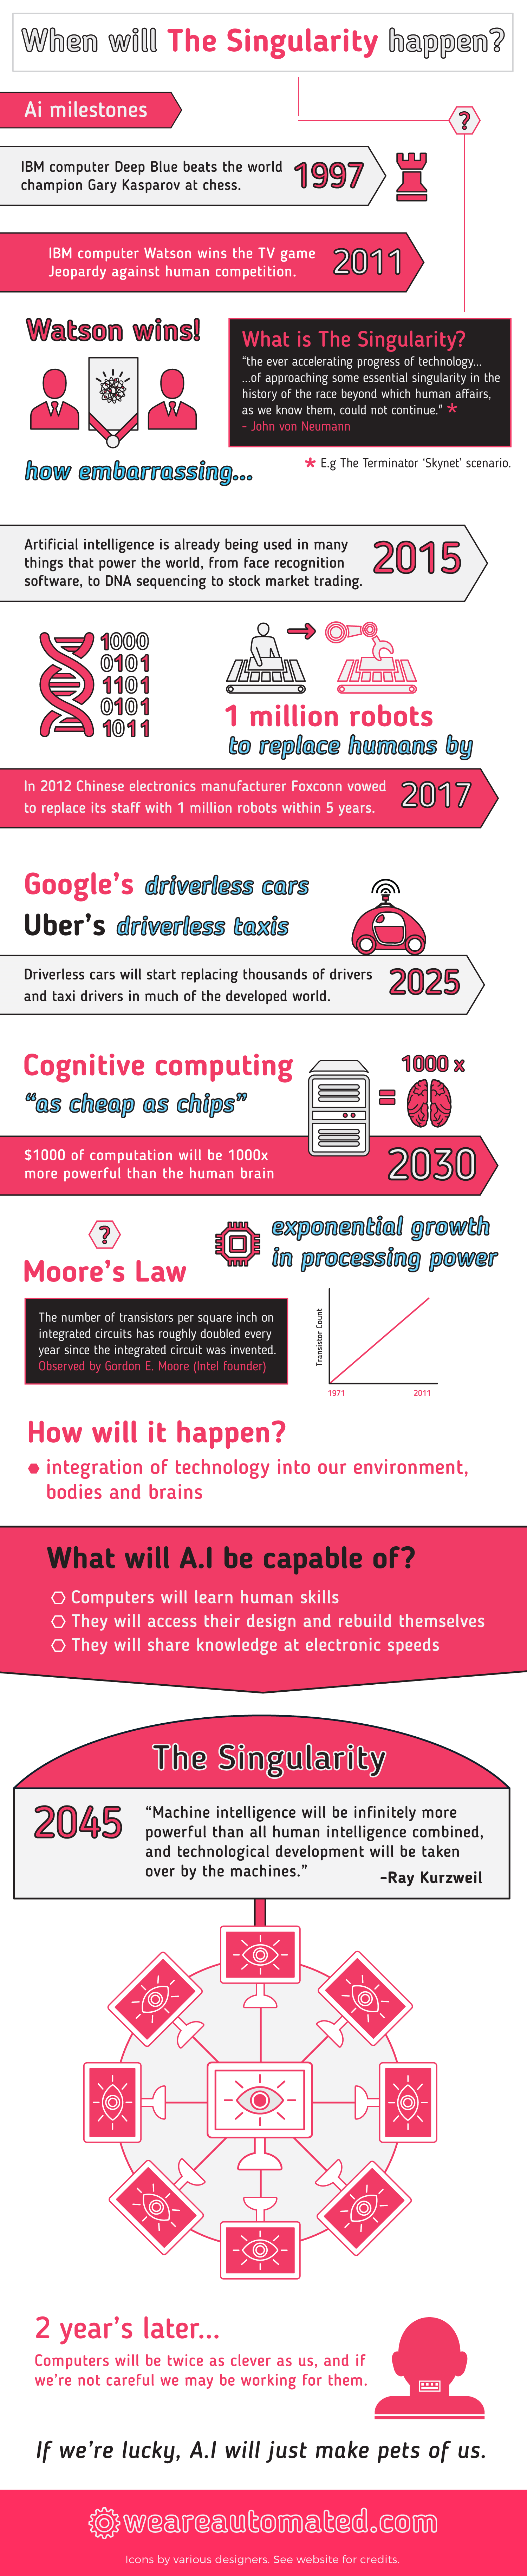 When Will The Singularity Happen? Infographic